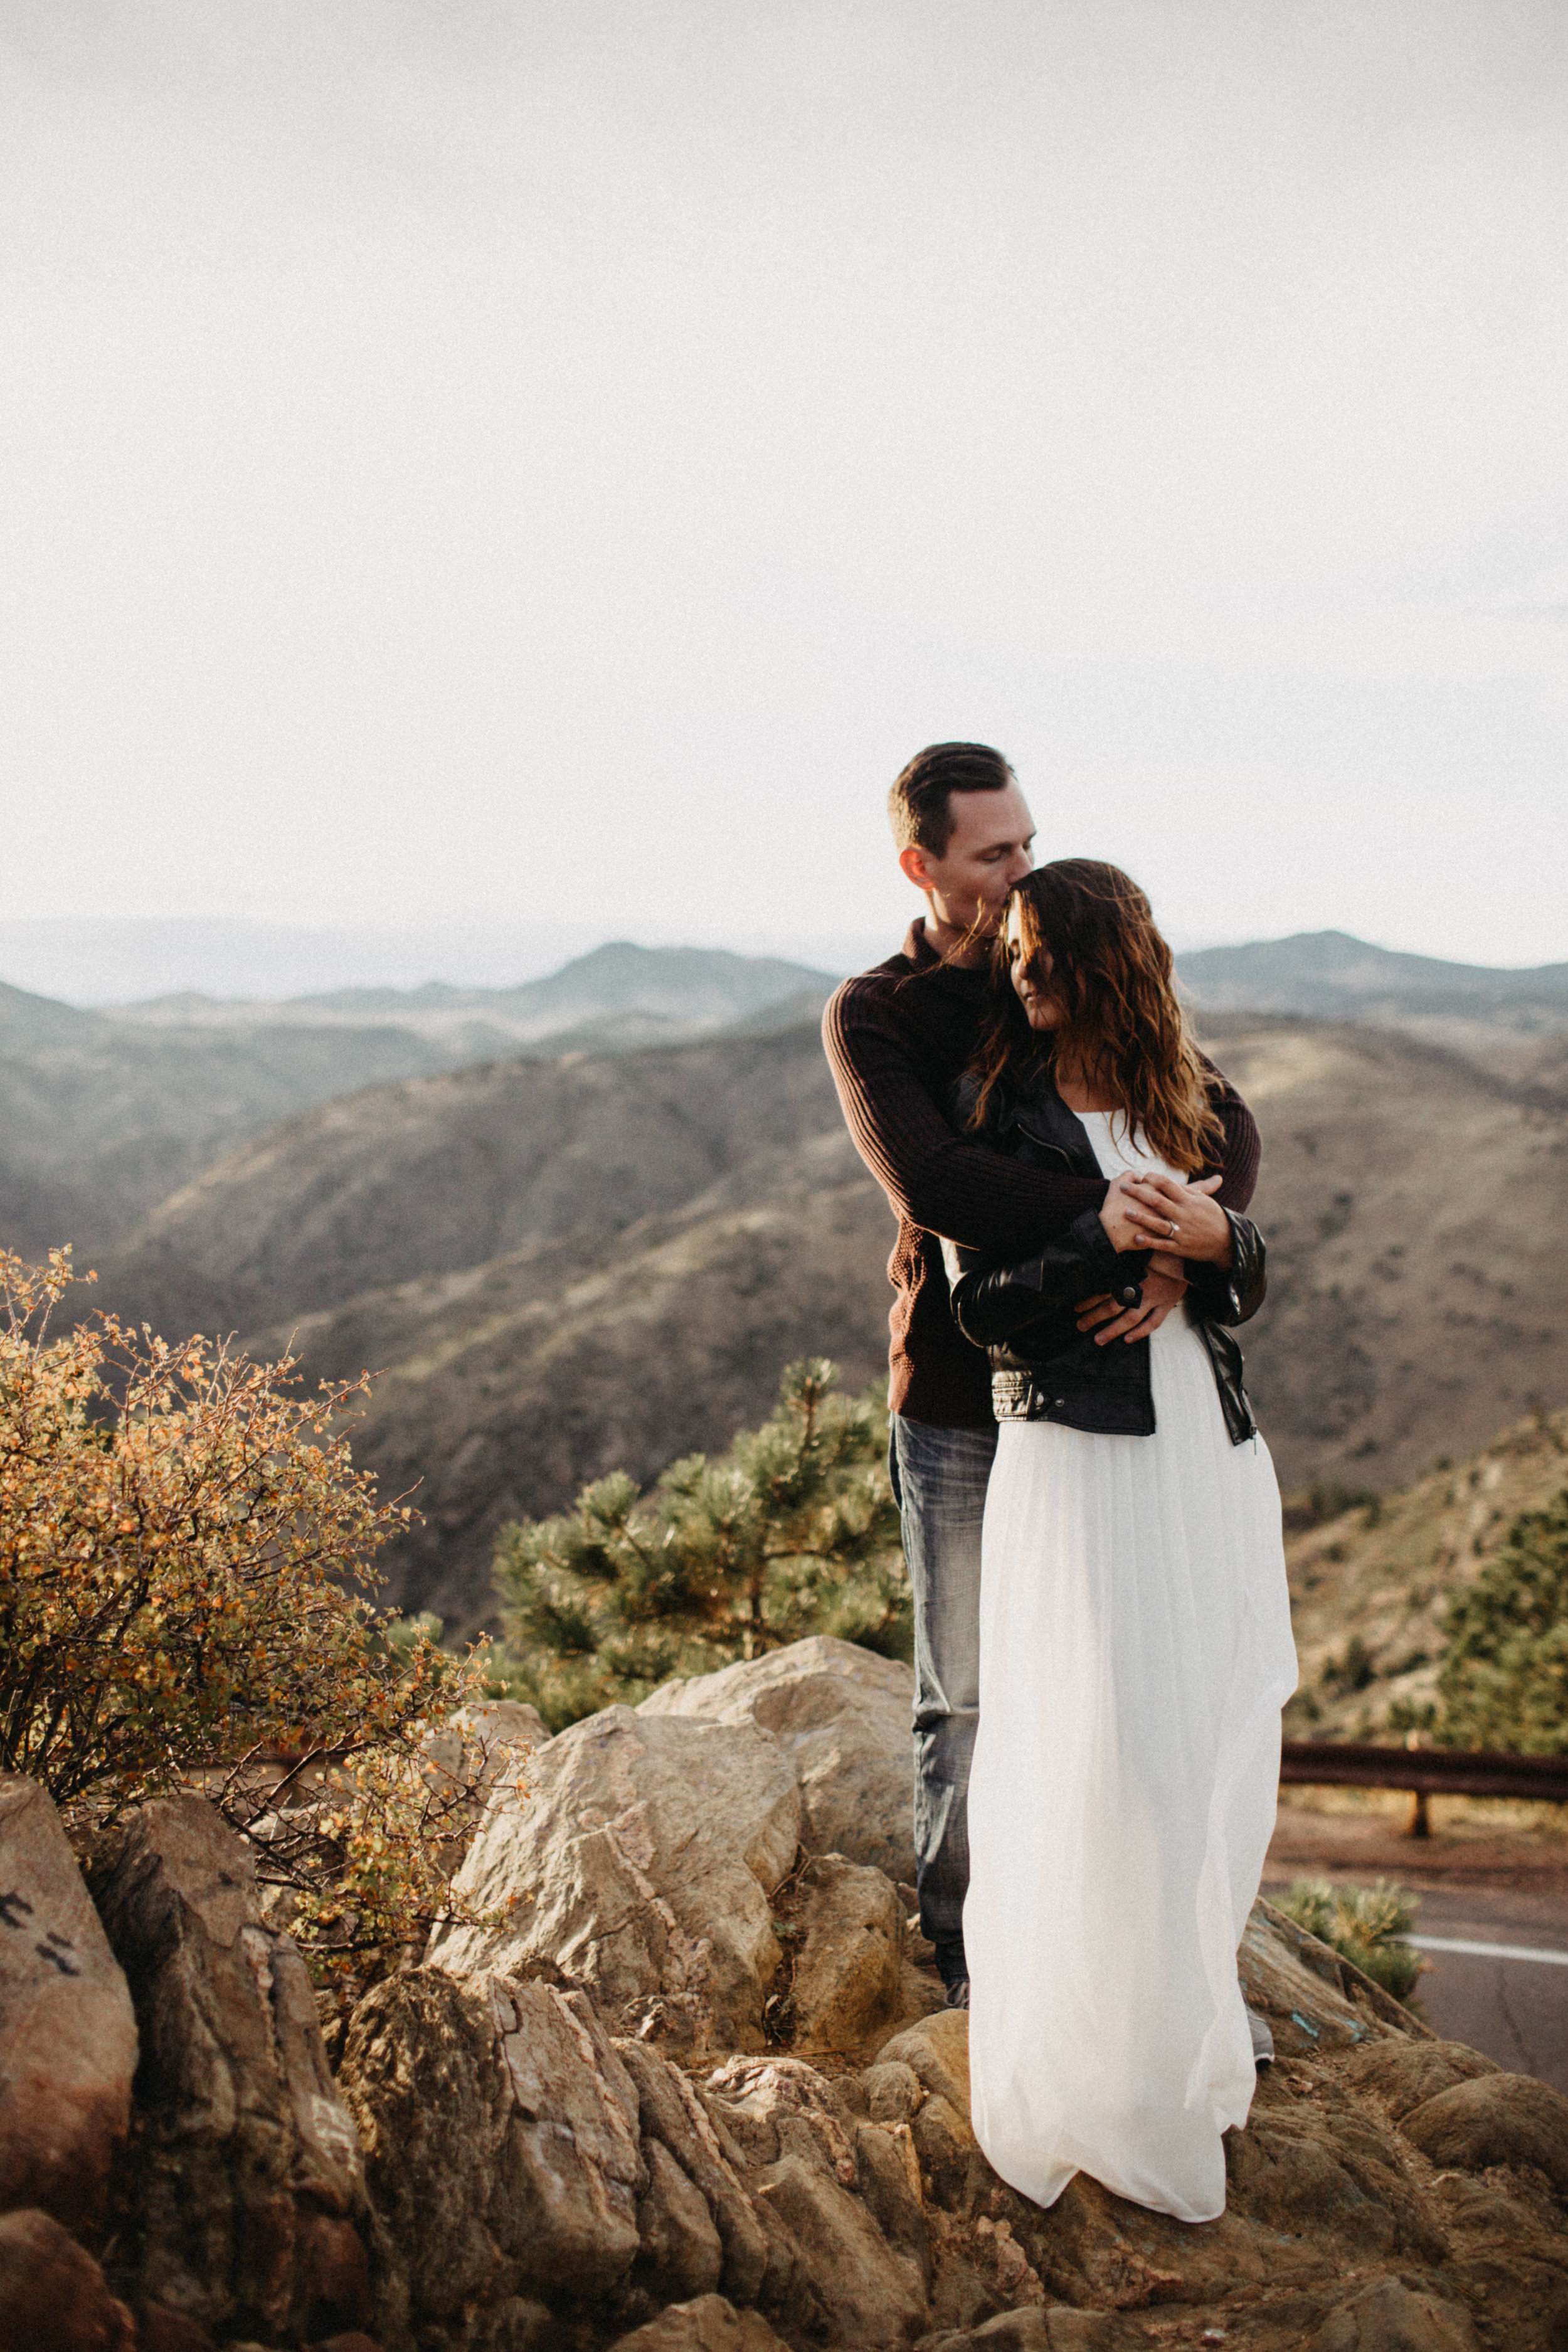 Adventure Engagement Photography at Lookout Mountain, Colorado